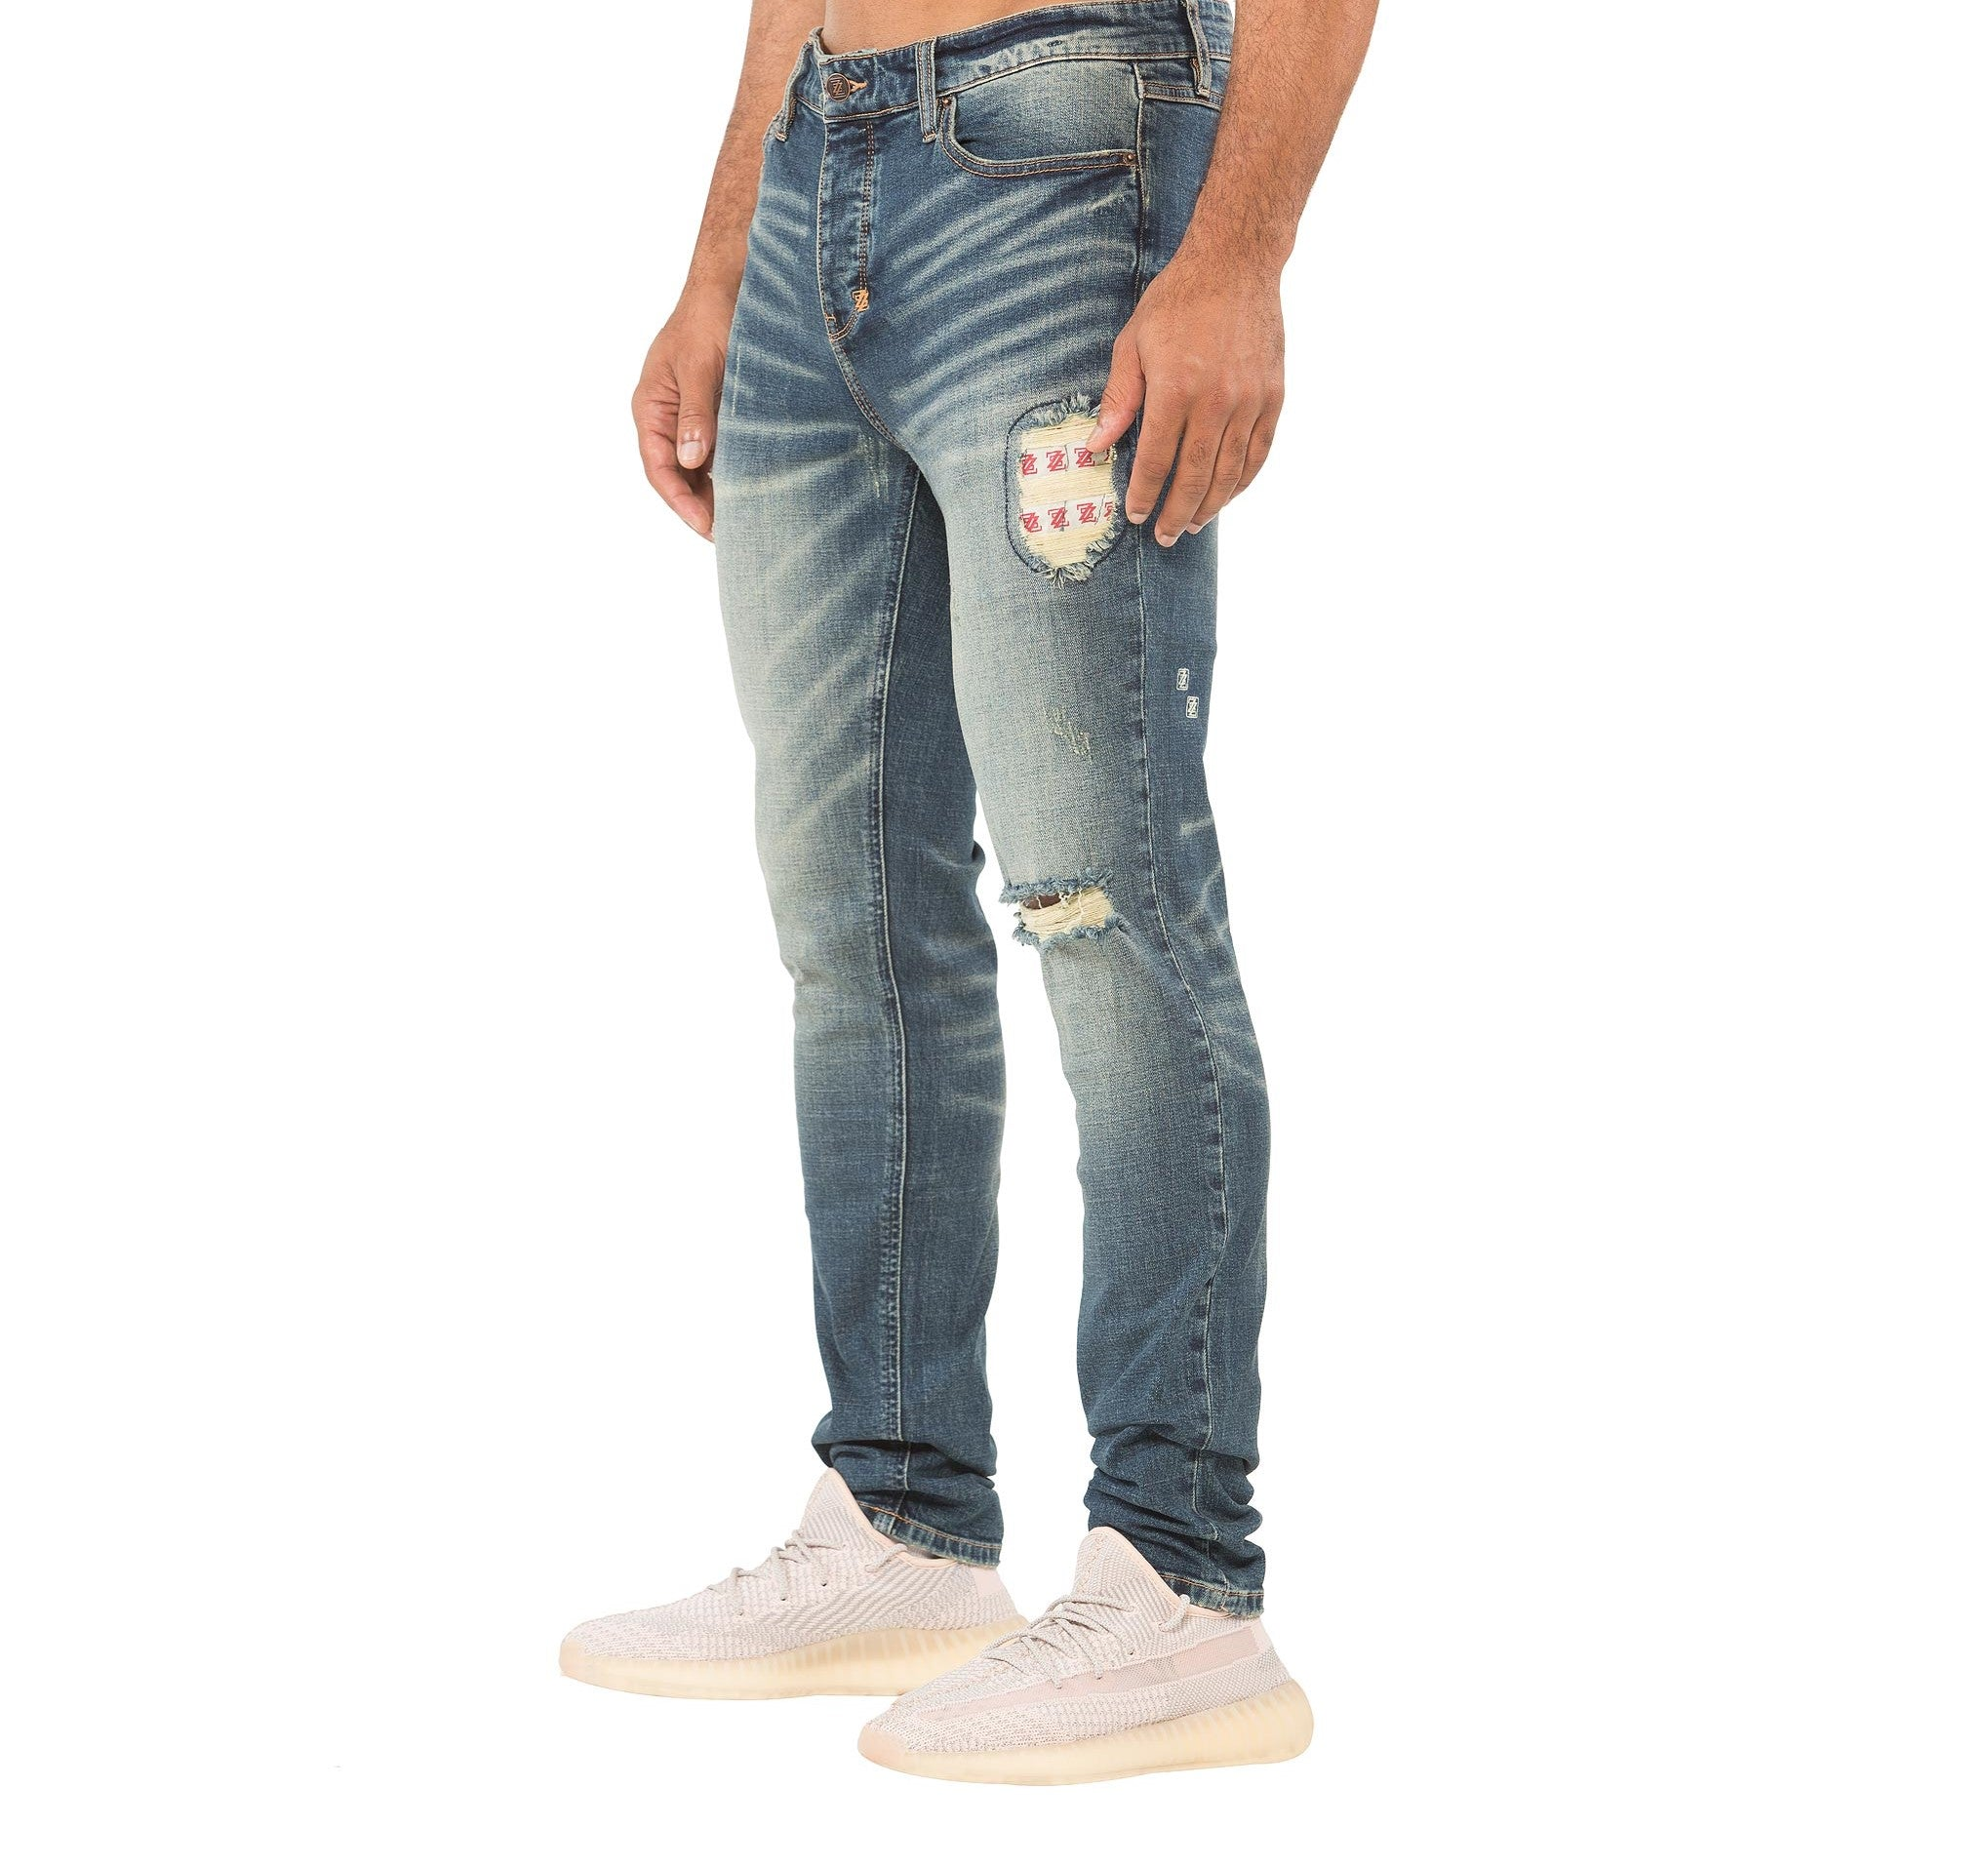 SANTORINI JEAN - DARK WASH